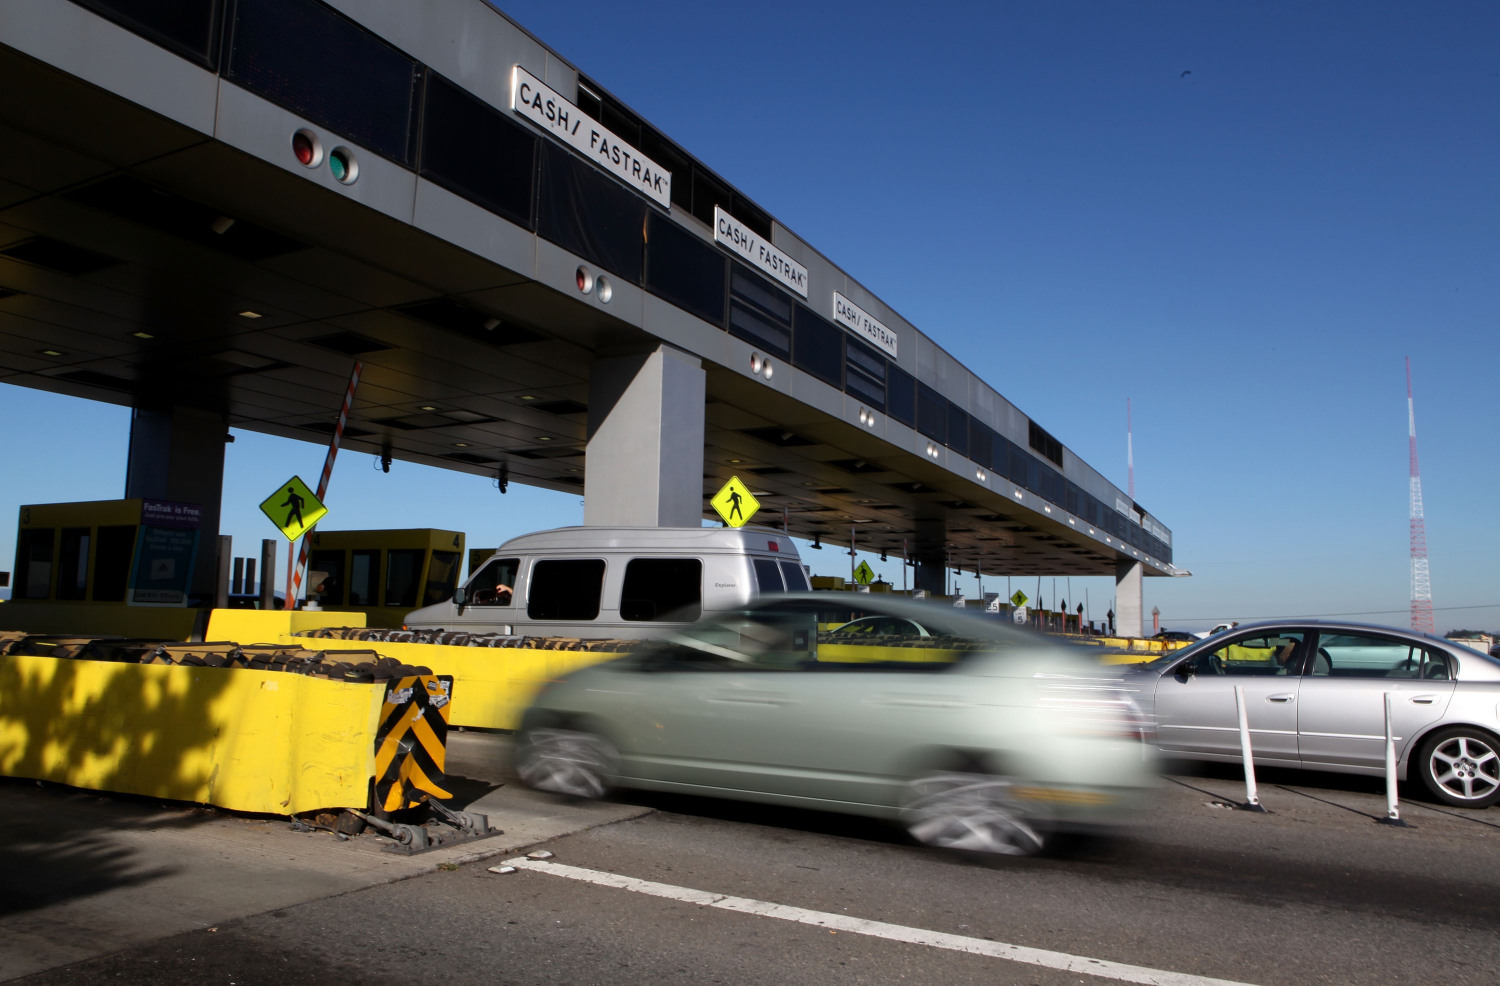 Bay Bridge Reopens After Being Closed For Six Days